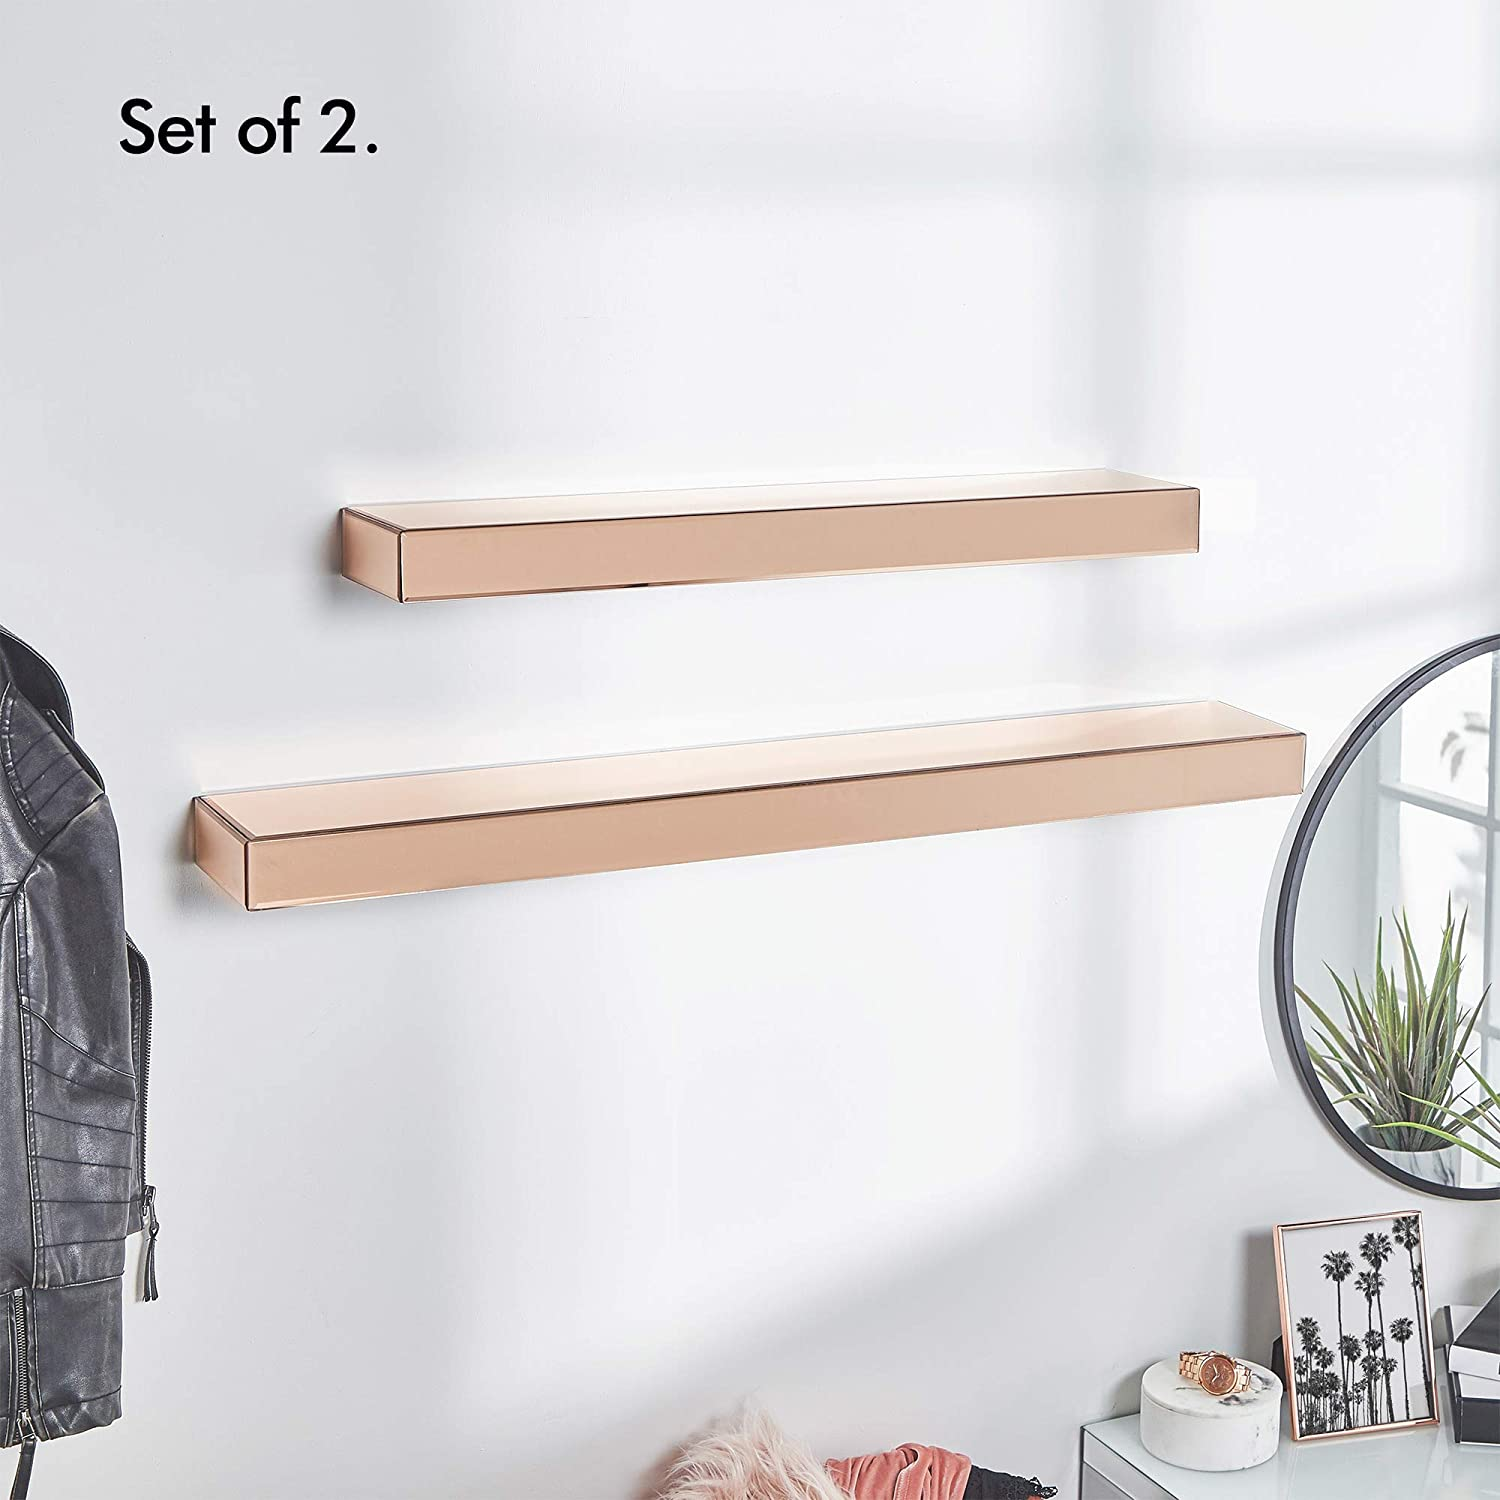 Beautify Set Of 2 Rose Gold Mirrored Furniture Shelves – Floating Display  Ledges – Large & Small – Storage – Glass – Bedroom, Living,